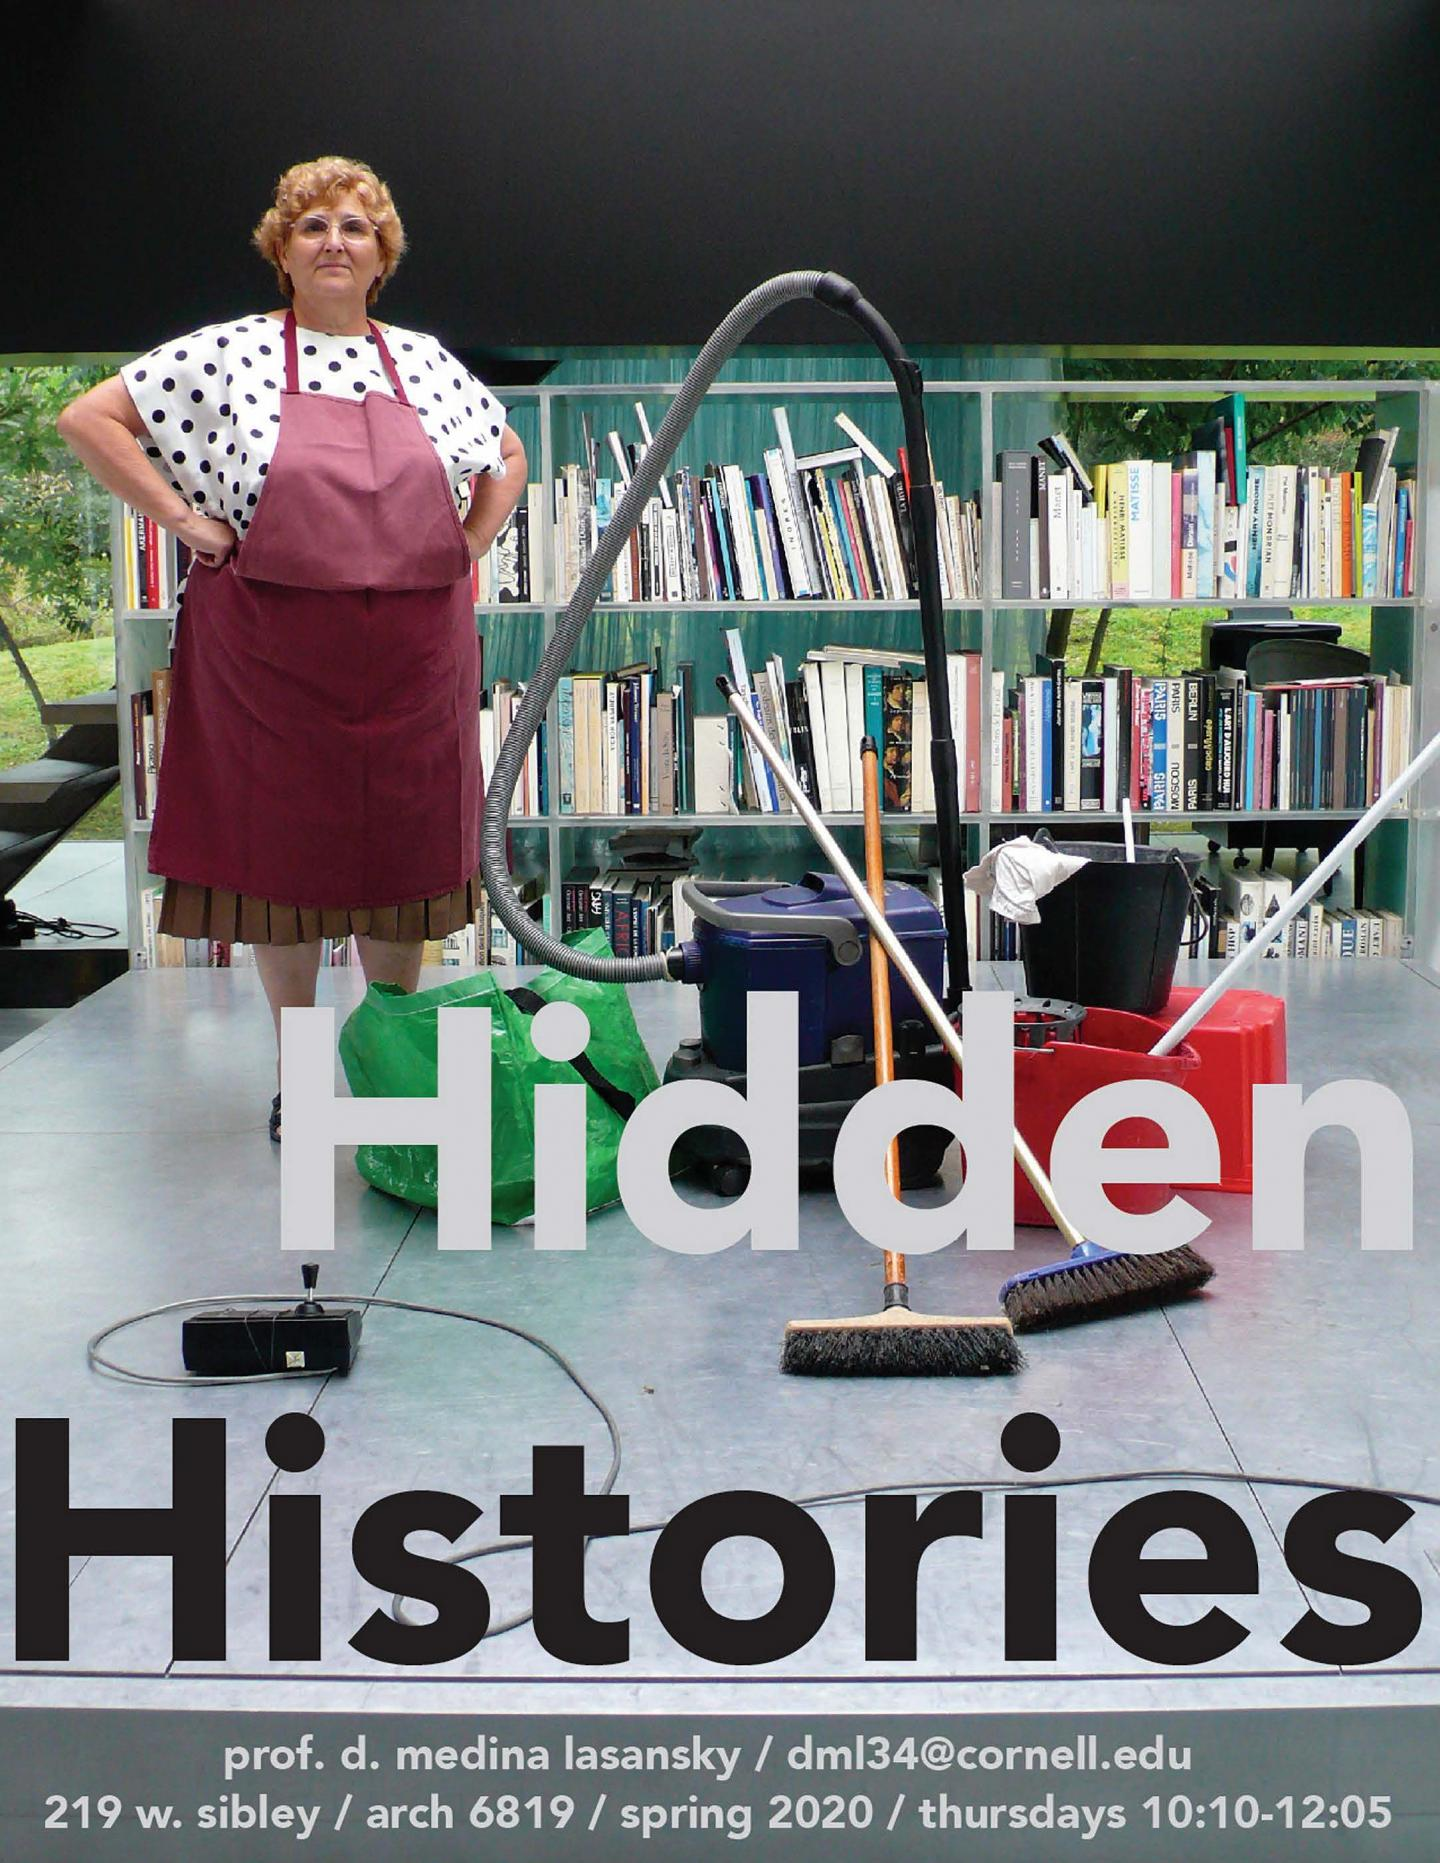 A woman wearing an apron stands with a vacuum cleaner, buckets, and cleaning supplies next to a bookcase filled with books.